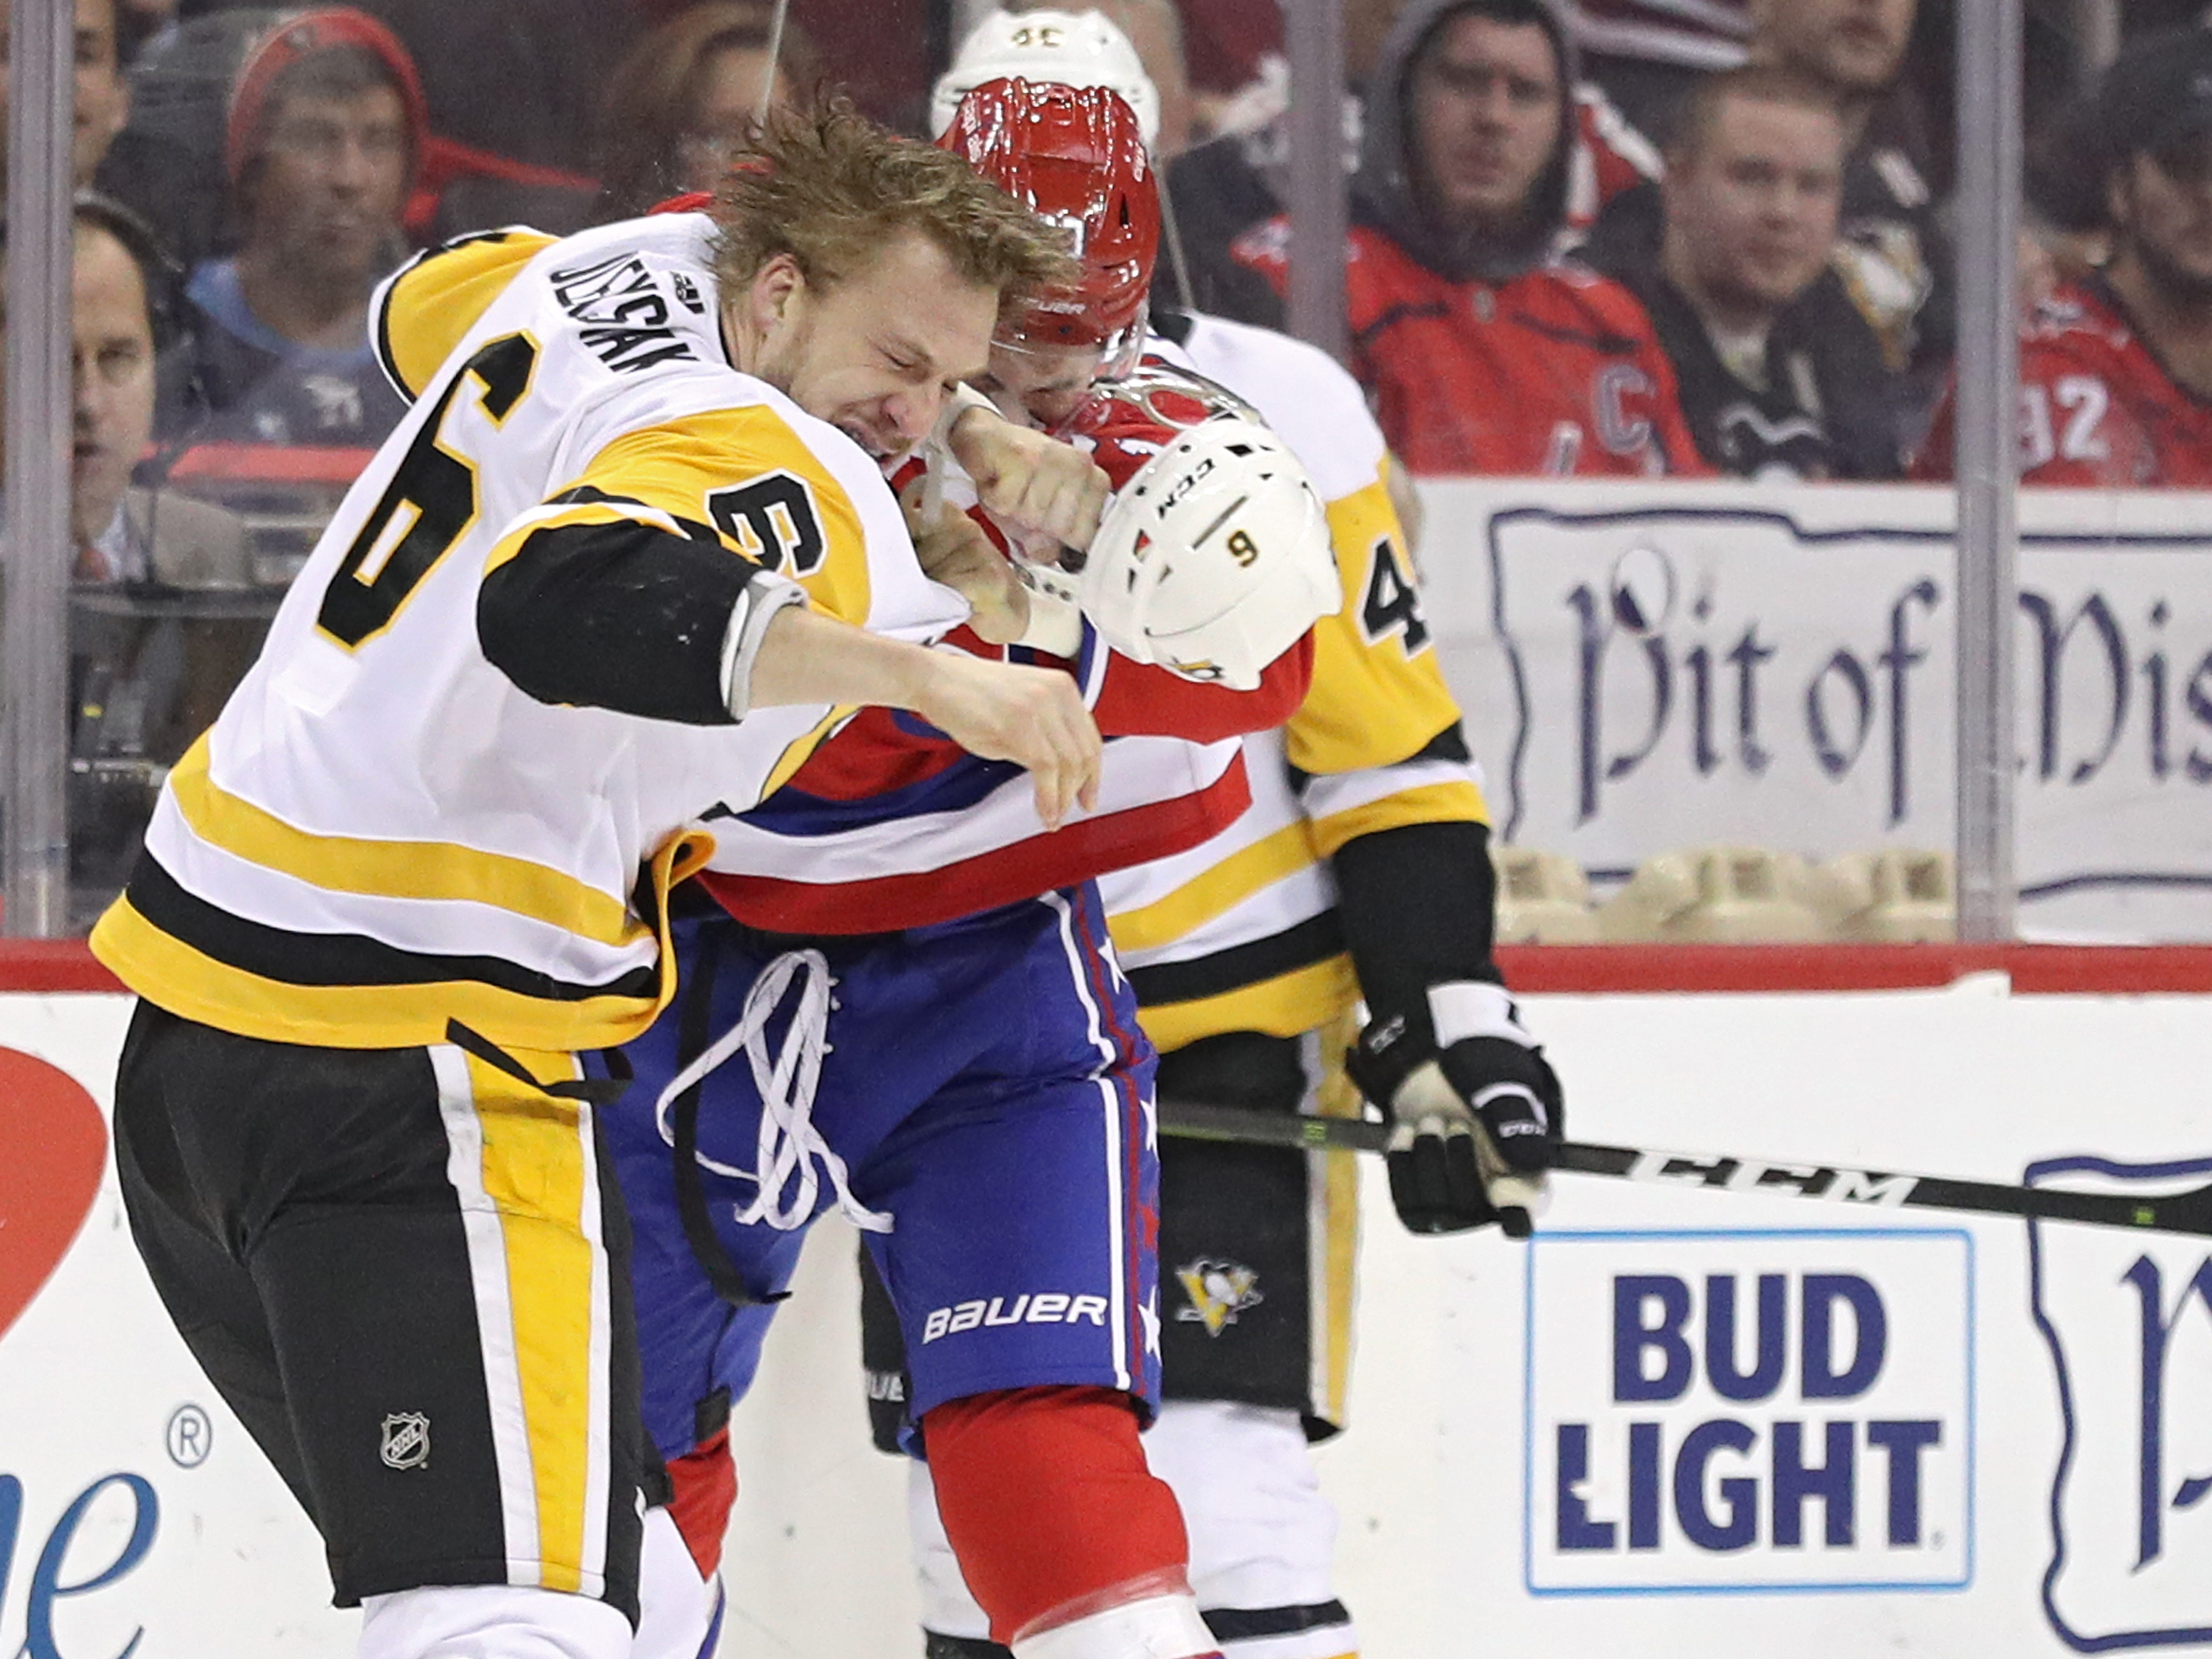 Dec. 19: Washington Capitals' Tom Wilson vs. Pittsburgh Penguins' Jamie Oleksiak